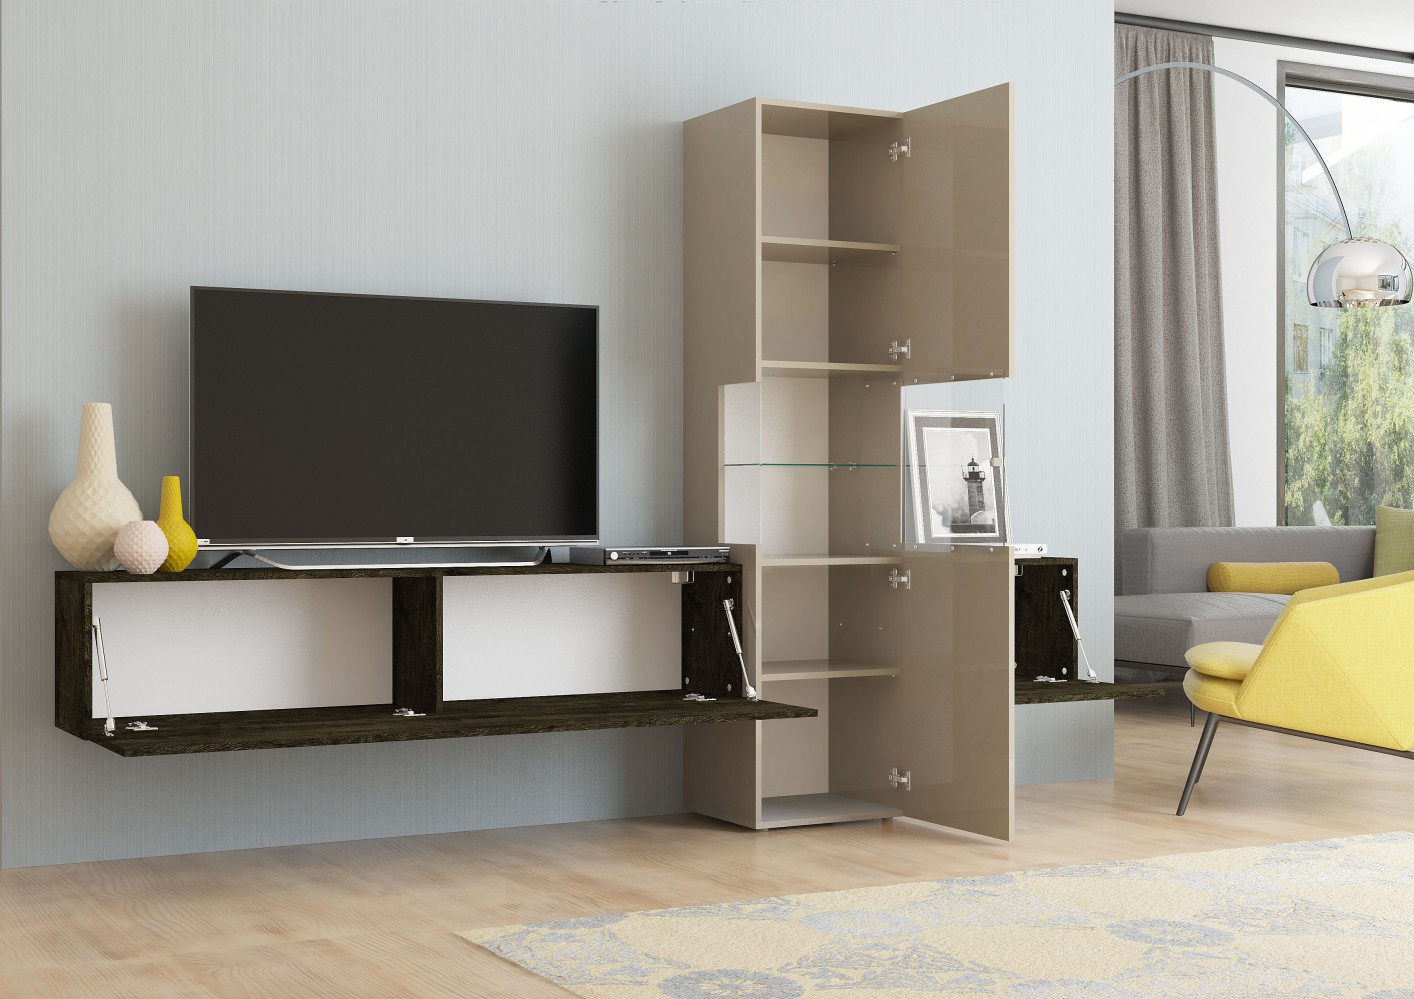 design wohnwand incontro wohnzimmerschrank tv schrank mediawand anbauwand italy ebay. Black Bedroom Furniture Sets. Home Design Ideas